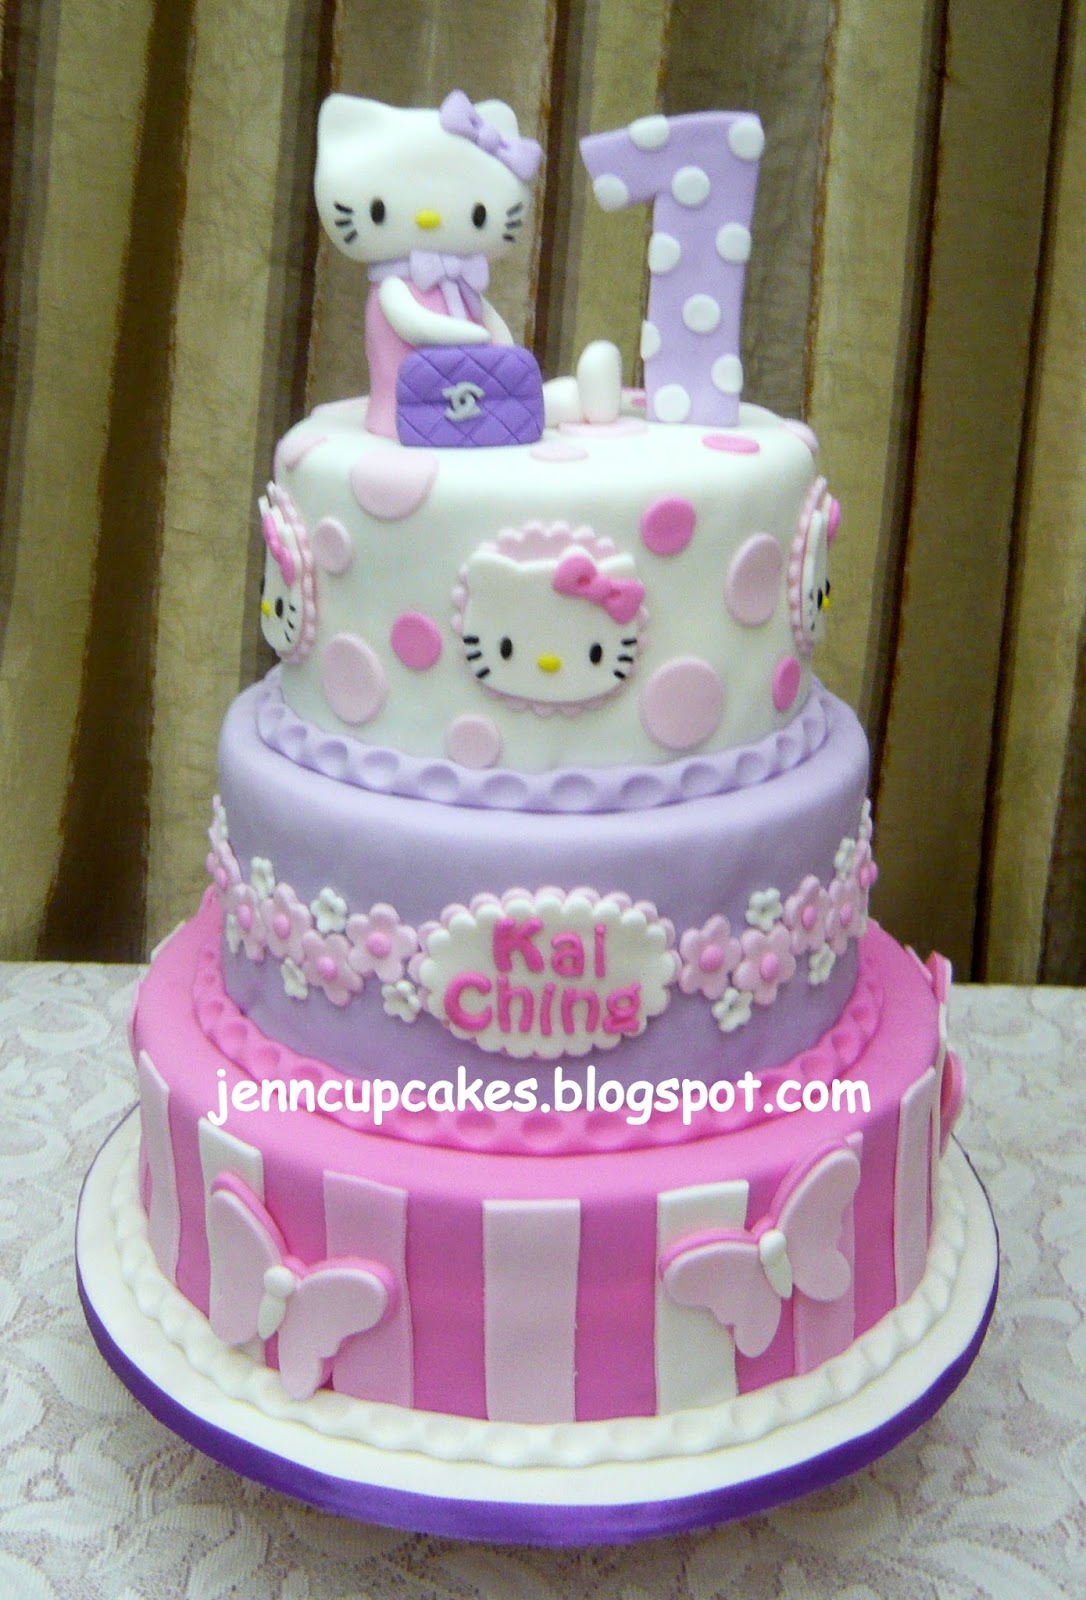 9 2 Layer Cakes And Cupcakes Hello Kitty Photo Hello Kitty Cupcake